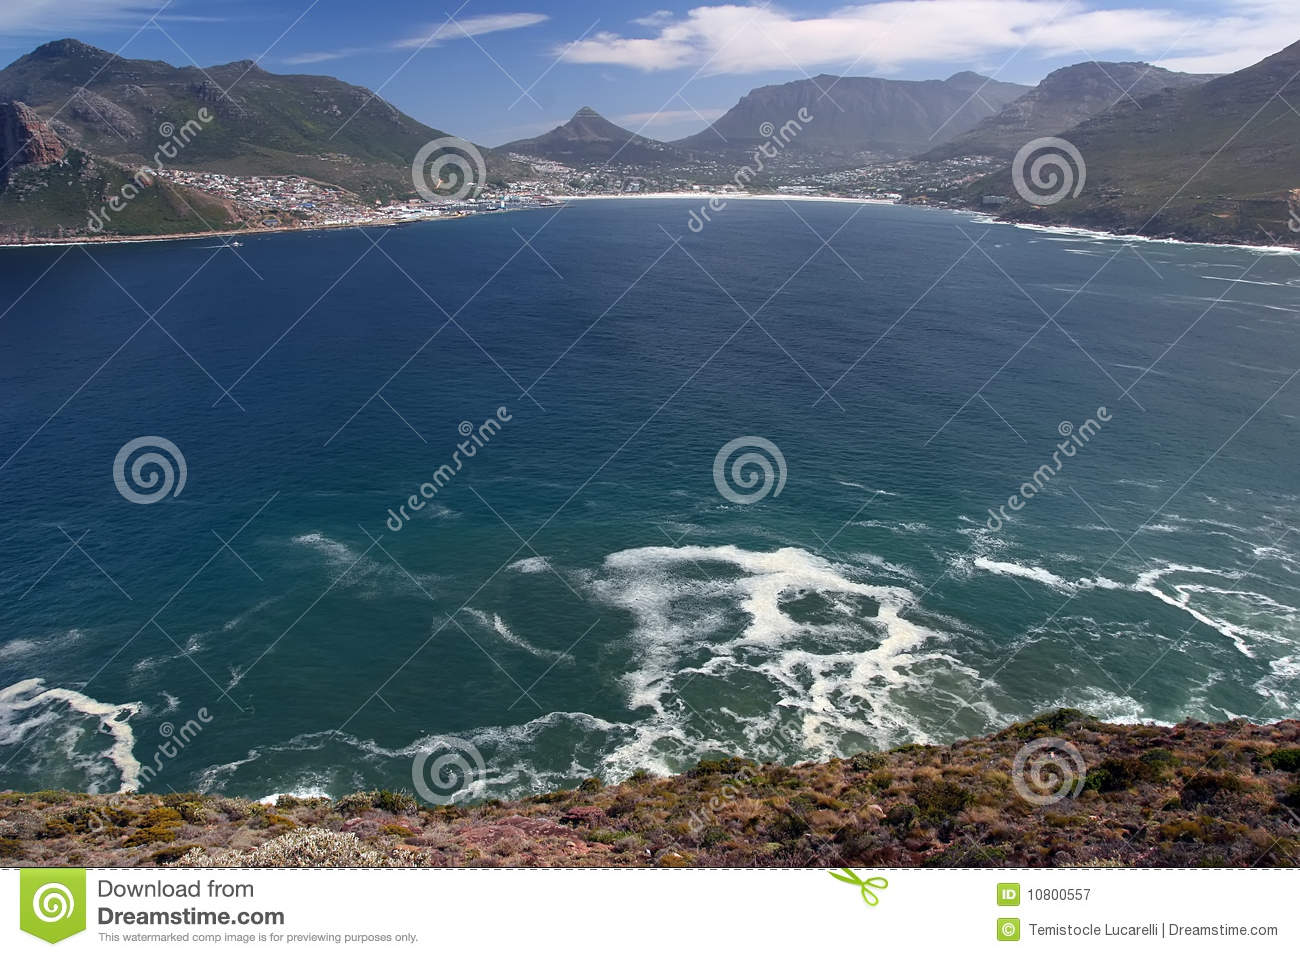 Immense Ocean Royalty Free Stock Photography - Image: 10800557